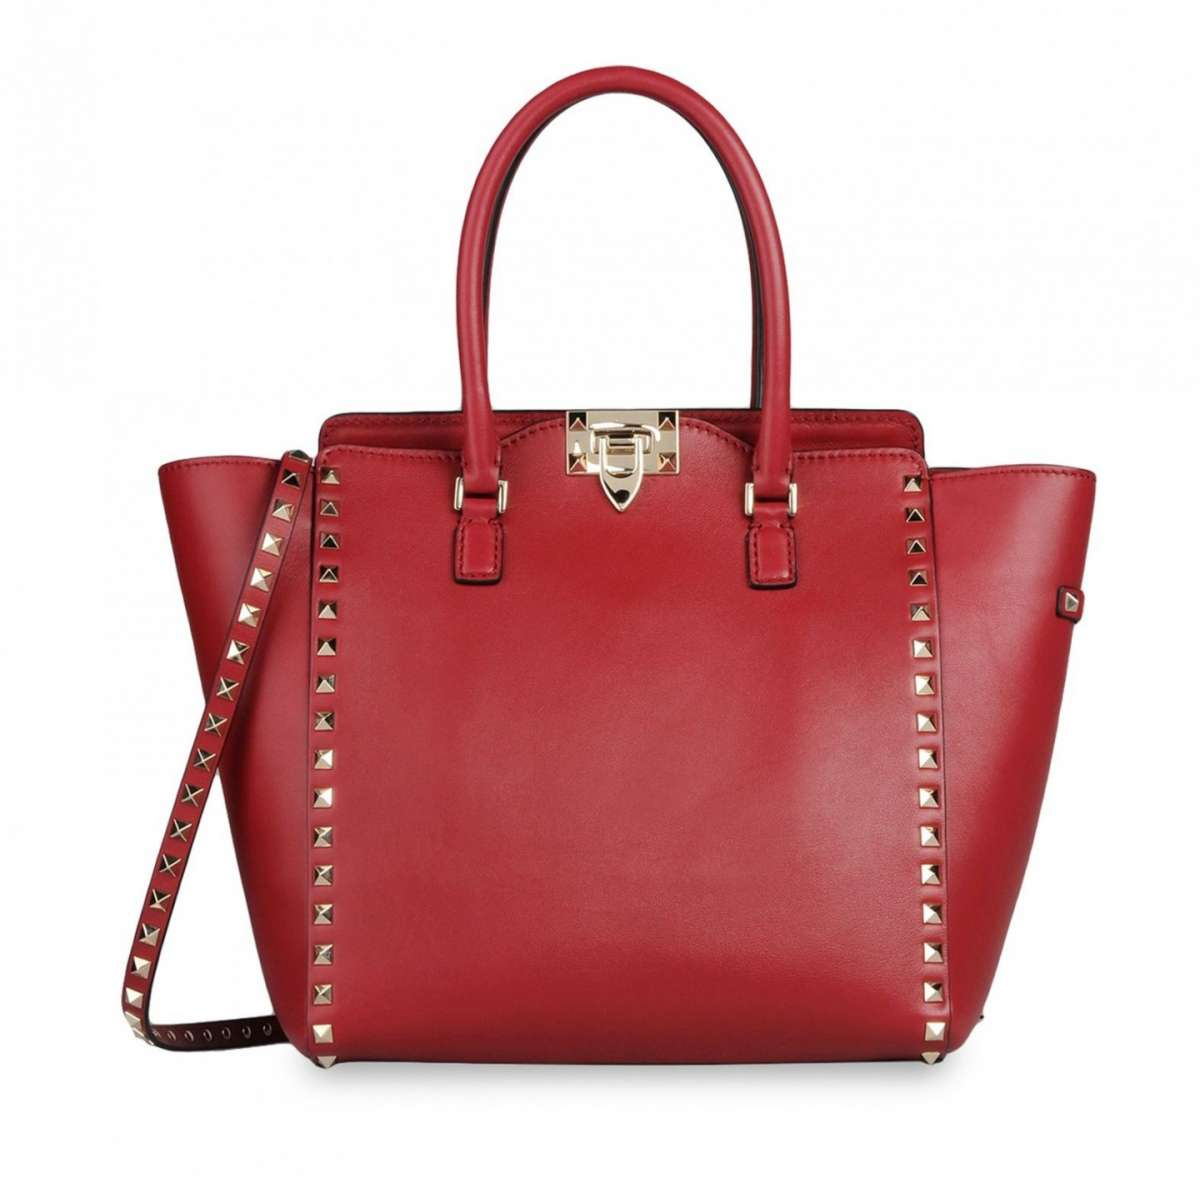 Handbag media rossa